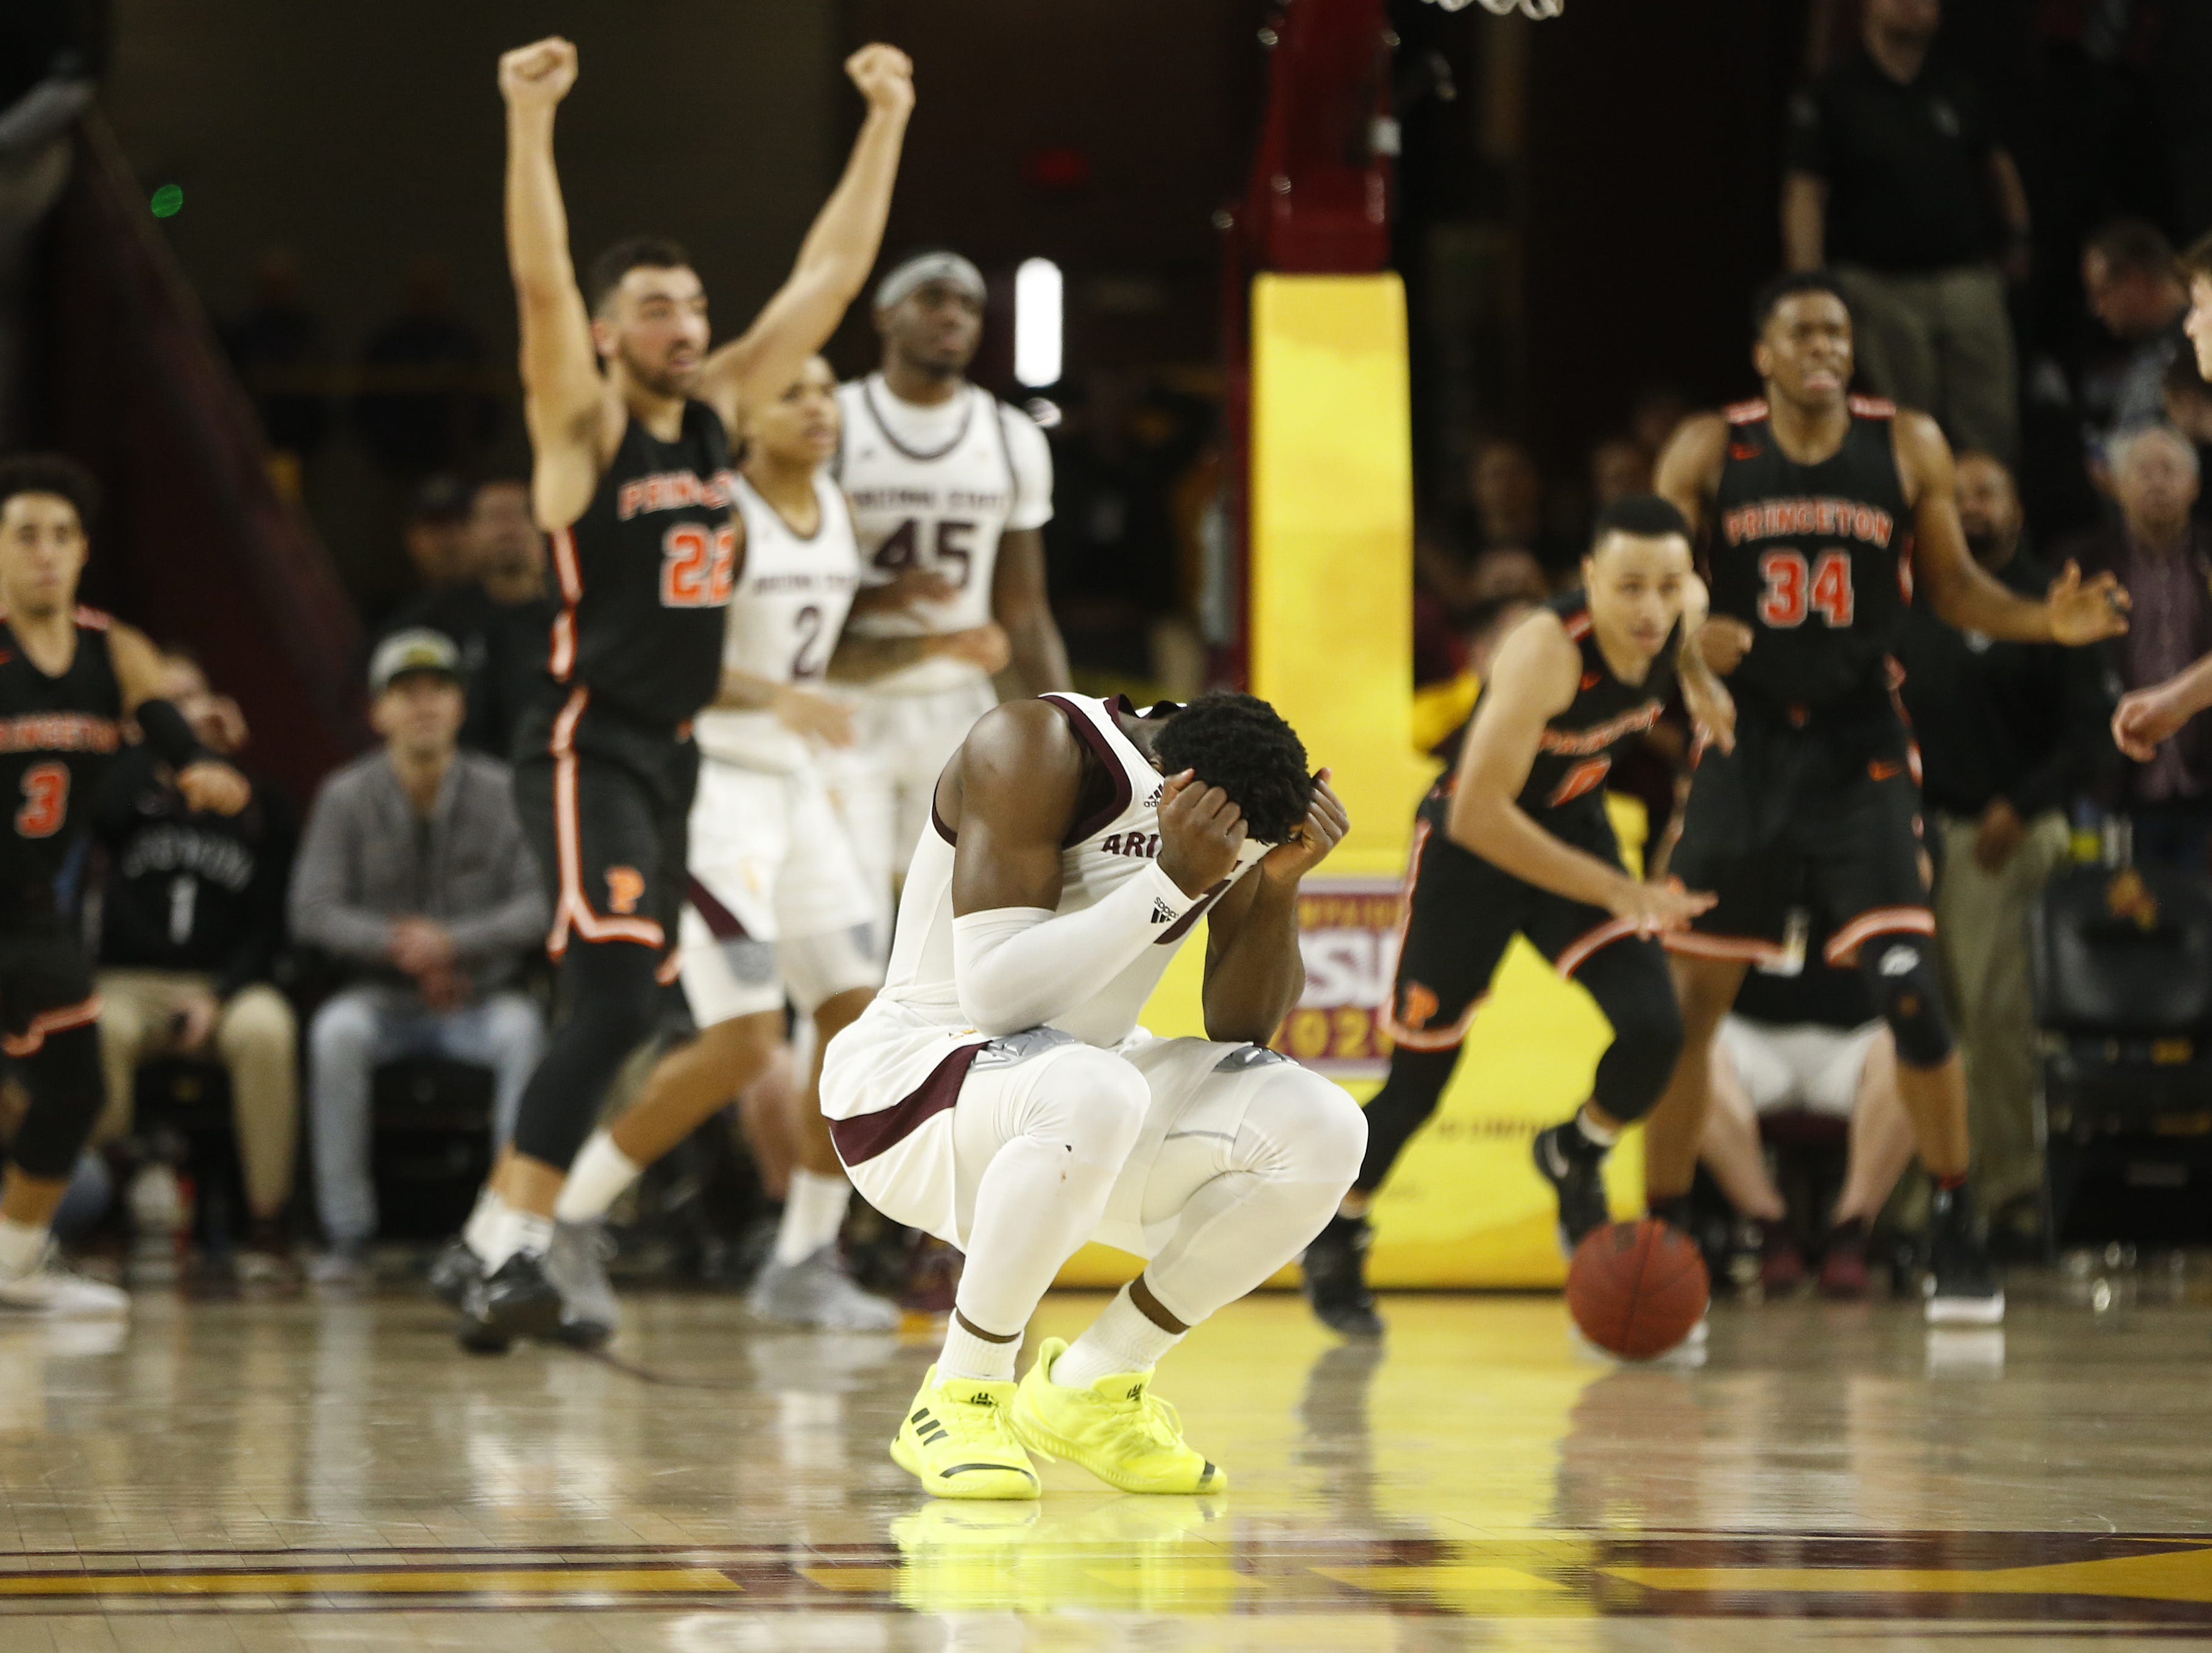 ASU's Luguentz Dort (0) reacts after missing a potential game-winning shot against Princeton during the second half in Tempe, Ariz. on December 29, 2018.